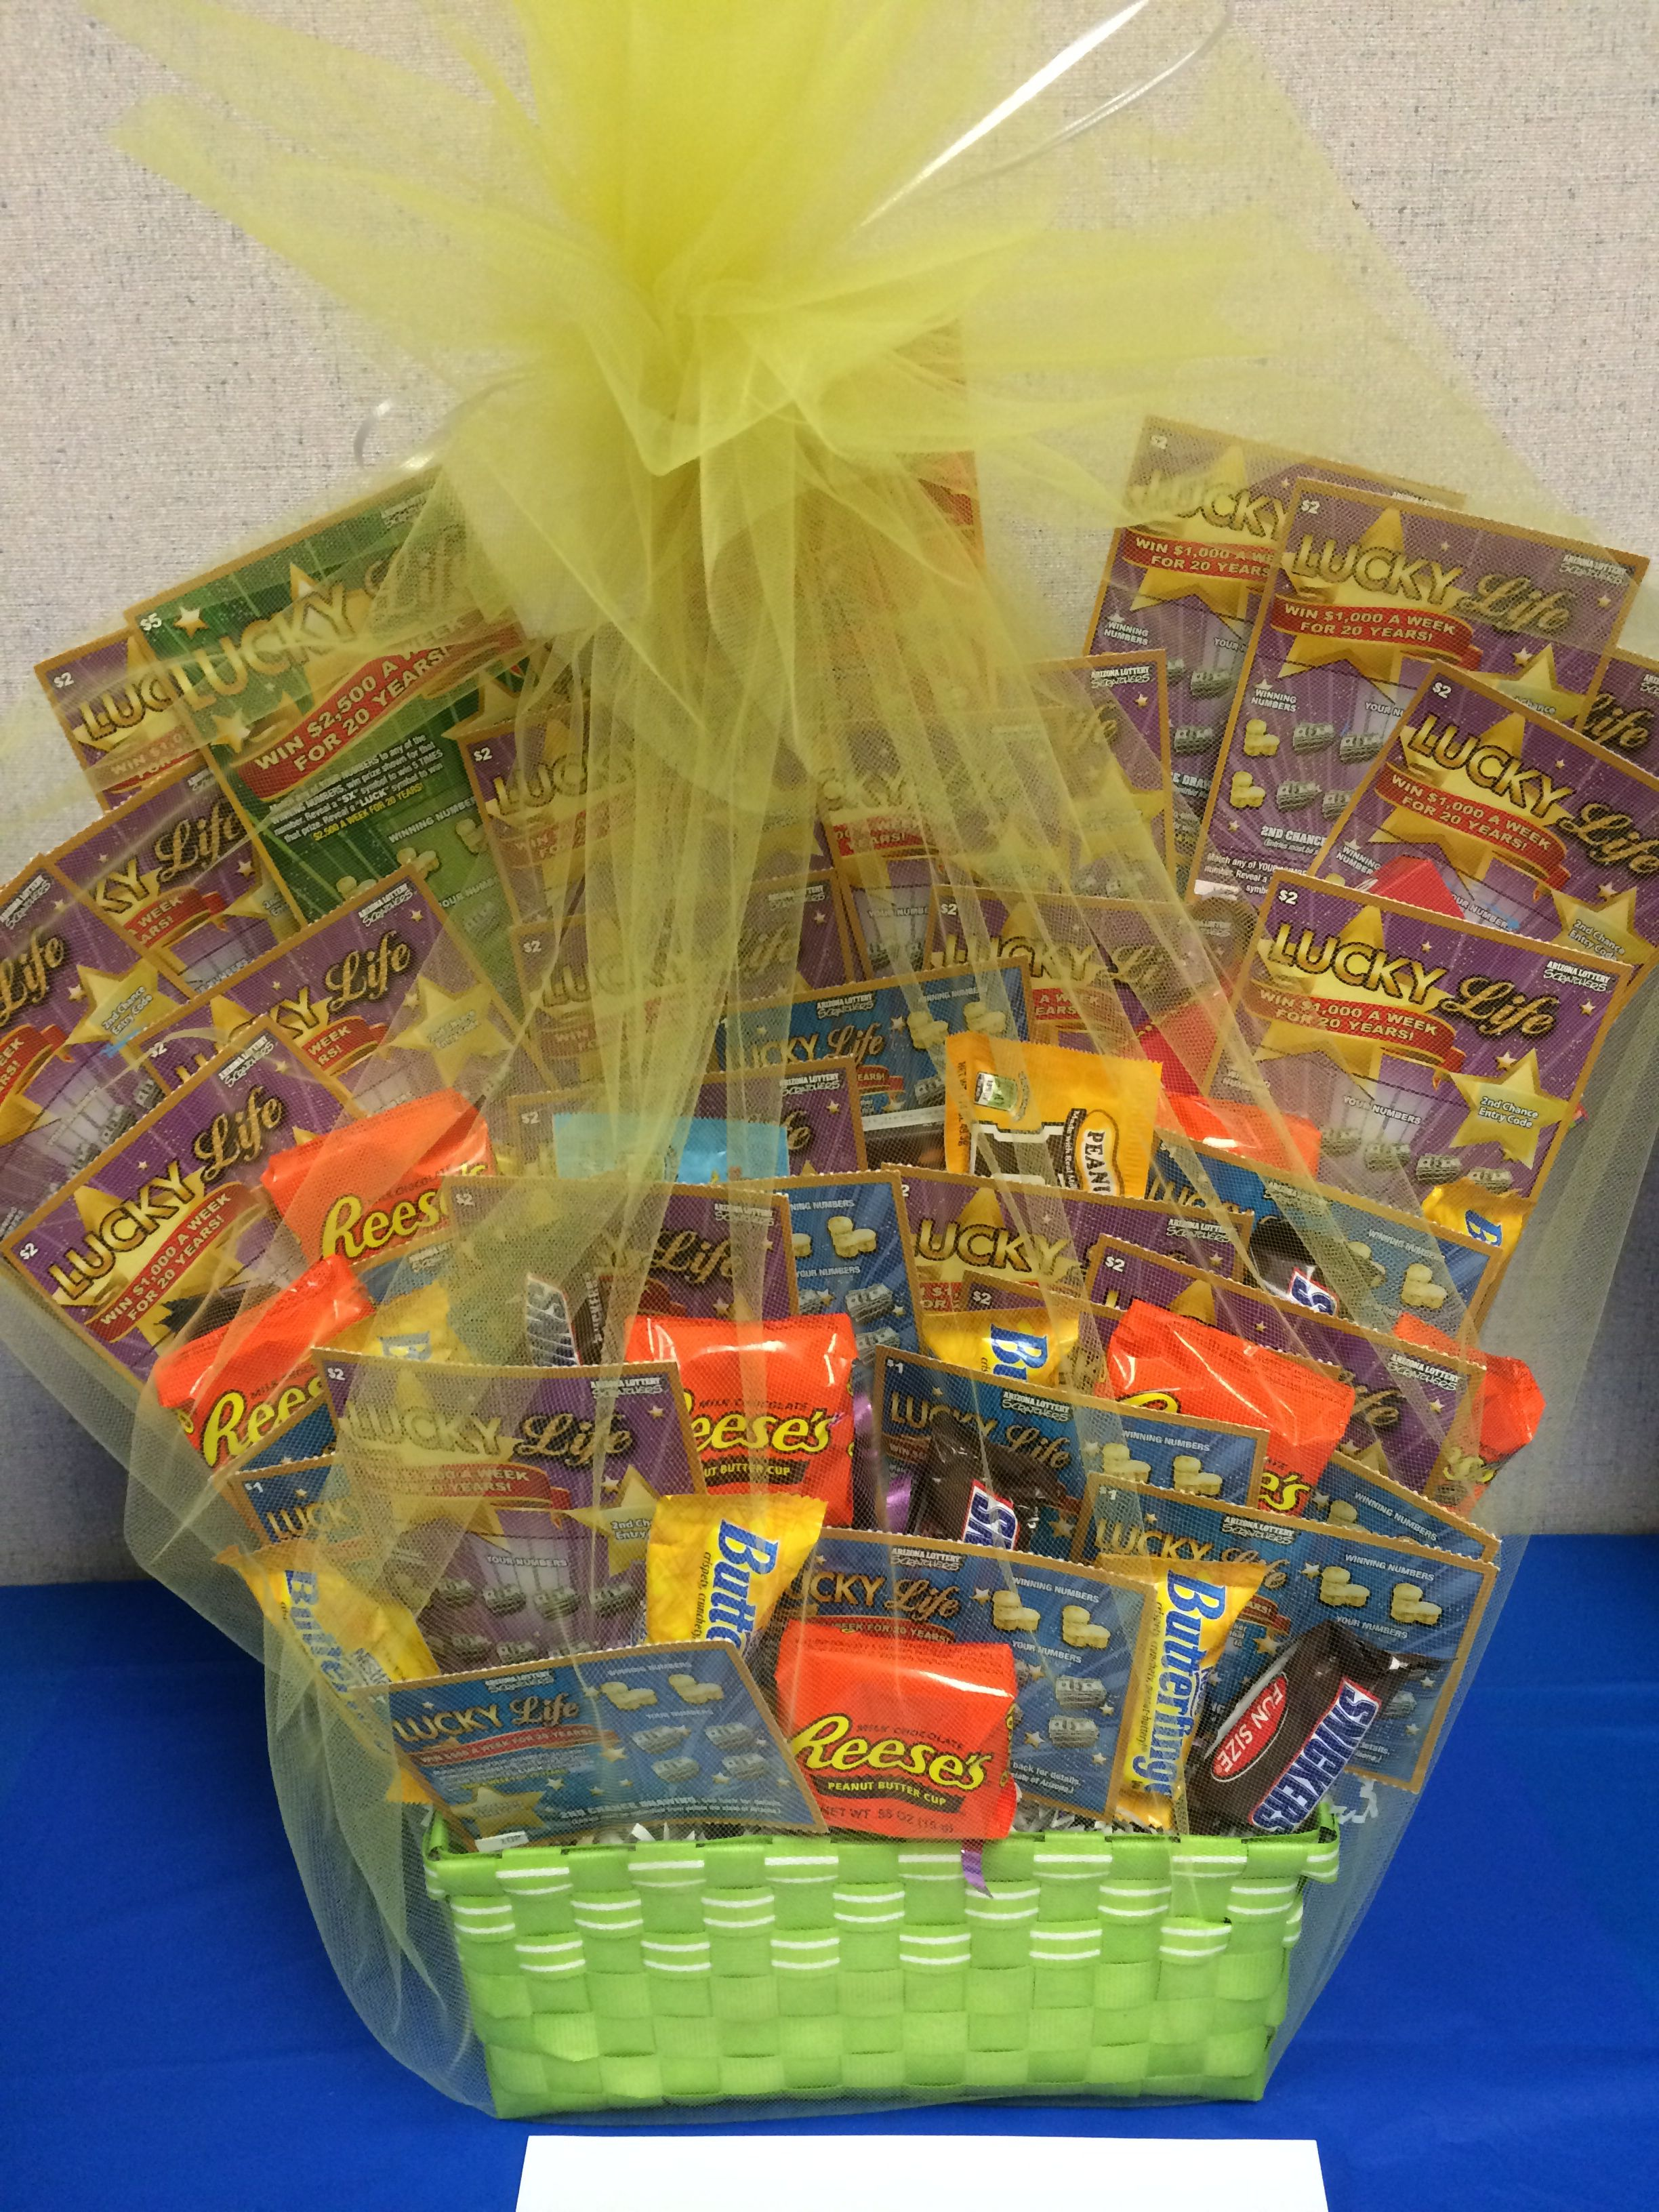 Lottery Basket Also Just Love The Candy Basket Idea For The